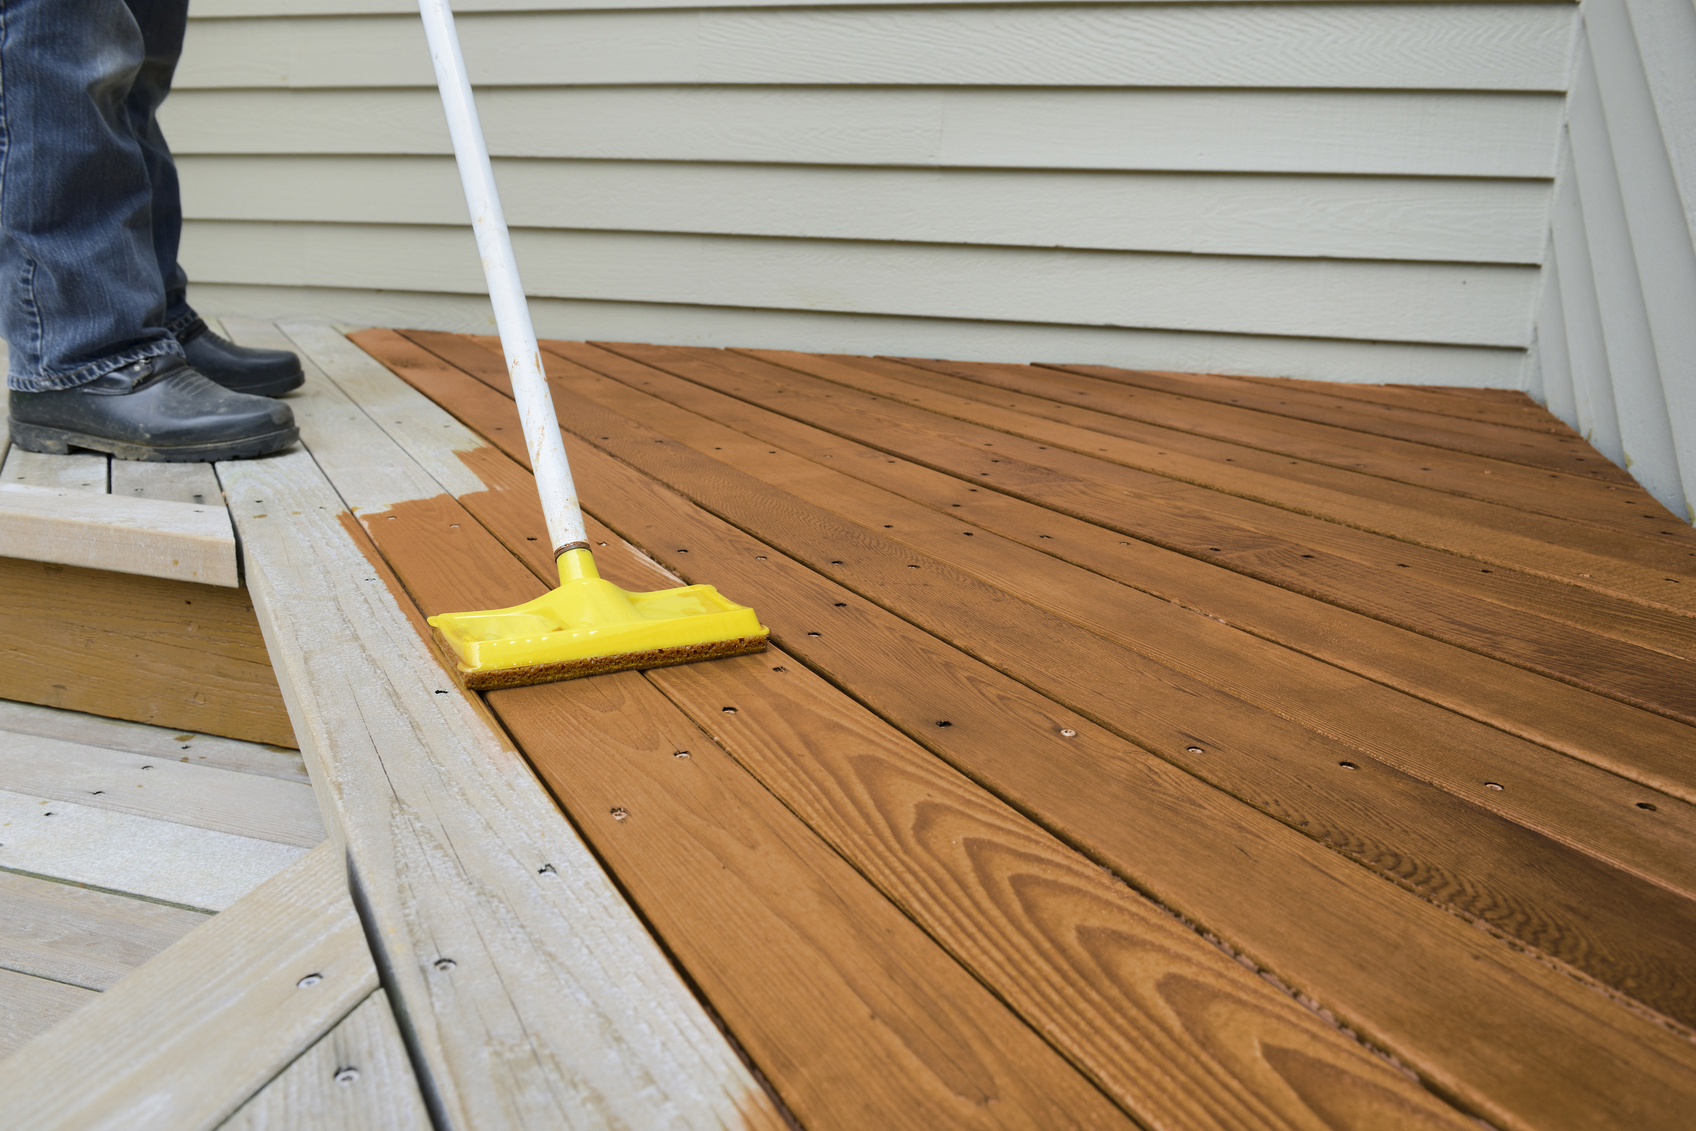 10 Best Rated Deck Stains Lovetoknow with sizing 1696 X 1131